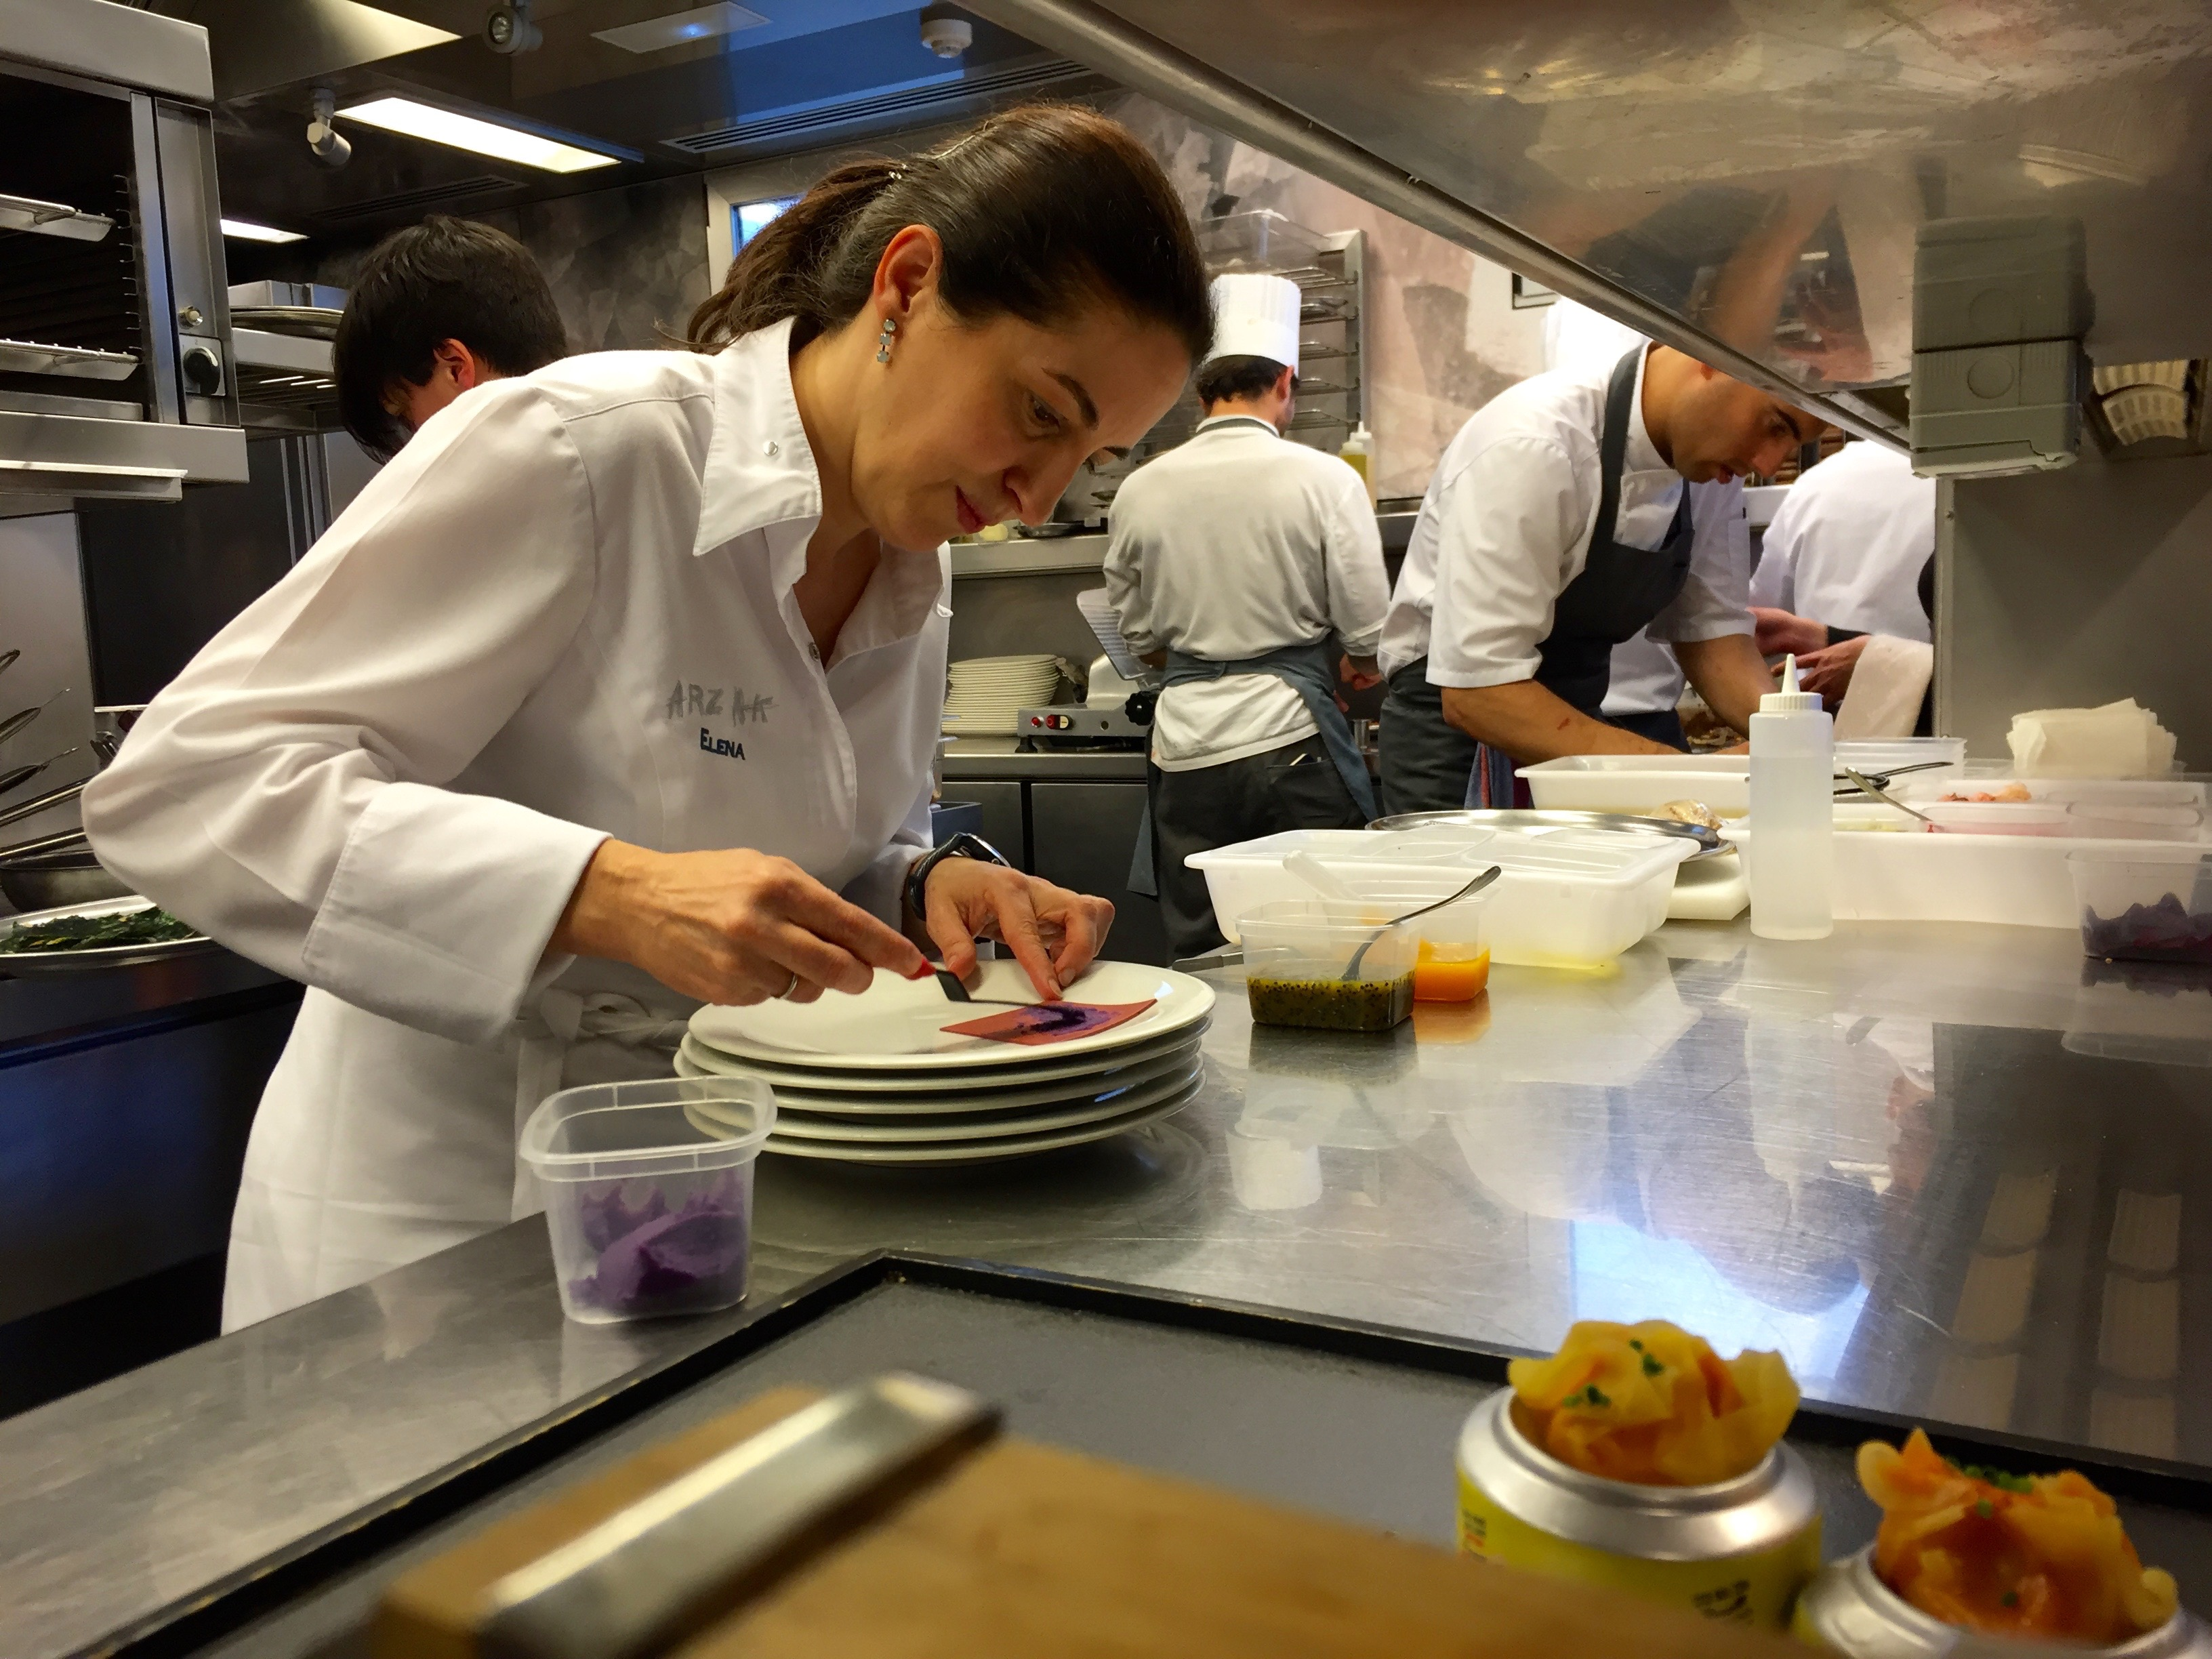 Elena Arzak in the kitchen at Arzak